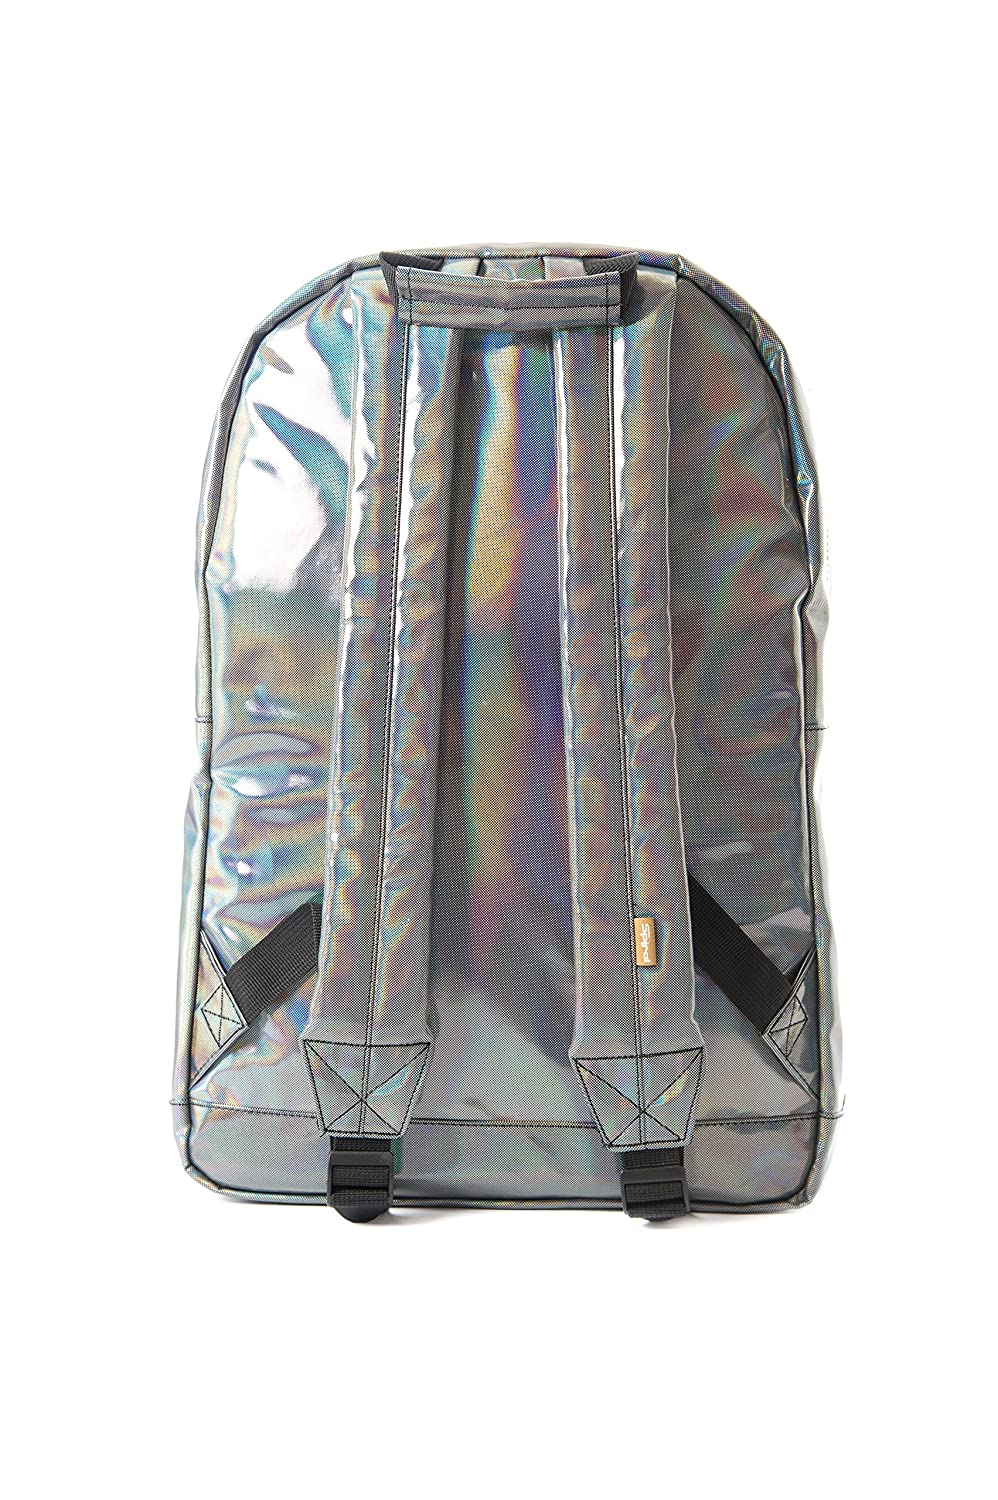 0b61048a7fc Spiral Unisex's OG Backpack, Silver, One Size: Amazon.co.uk: Sports &  Outdoors